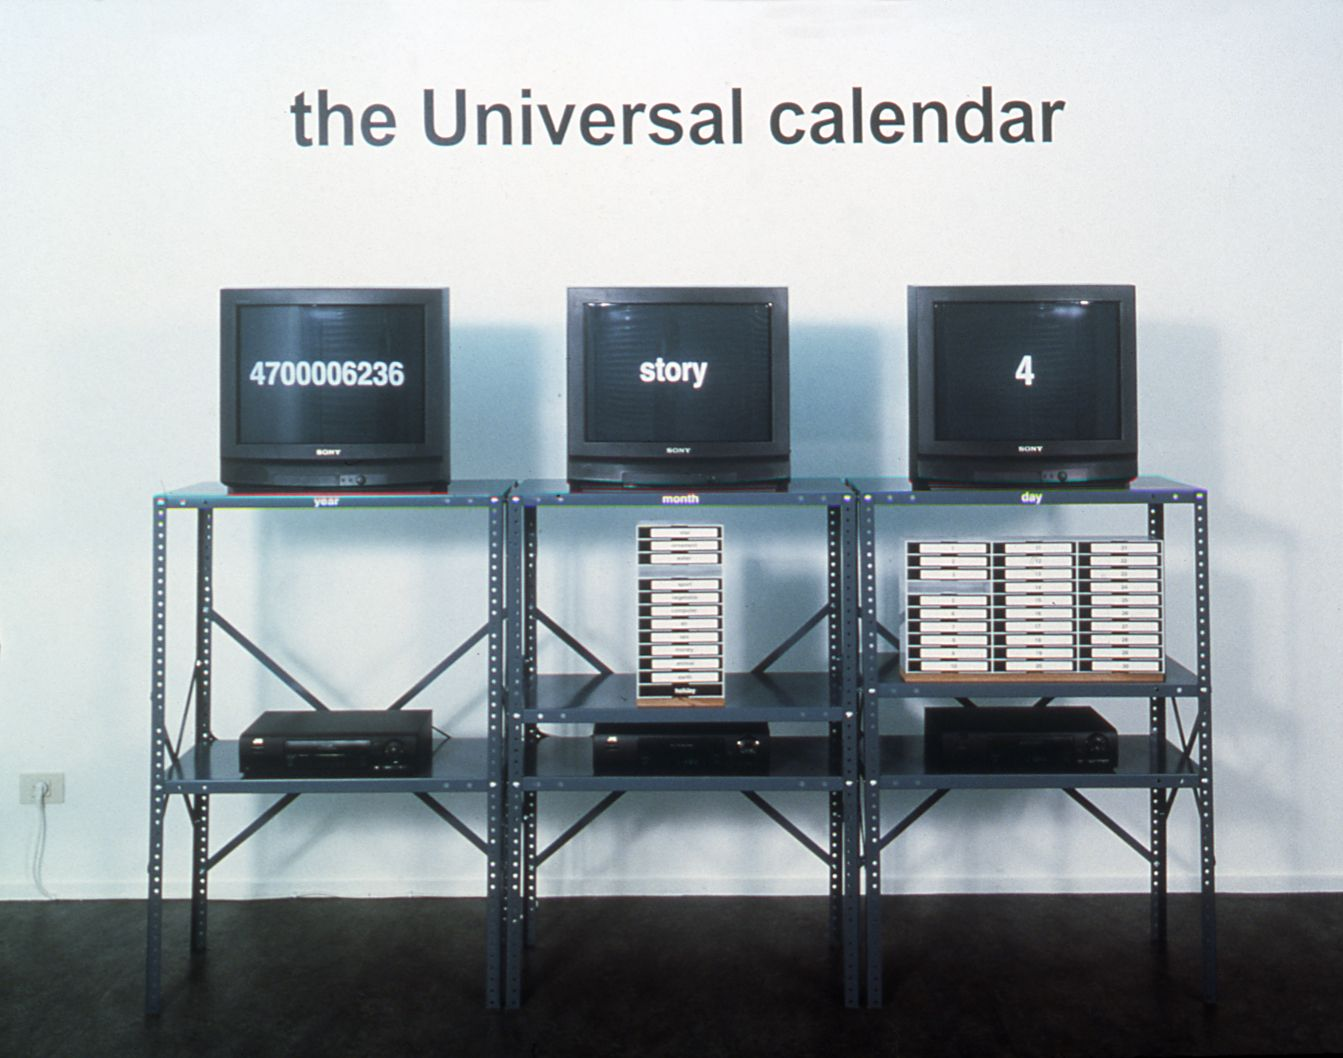 Jonathan Horowitz, The Universal Calendar, 1999, 43 continuous vhs tapes, industrial stand, wall text